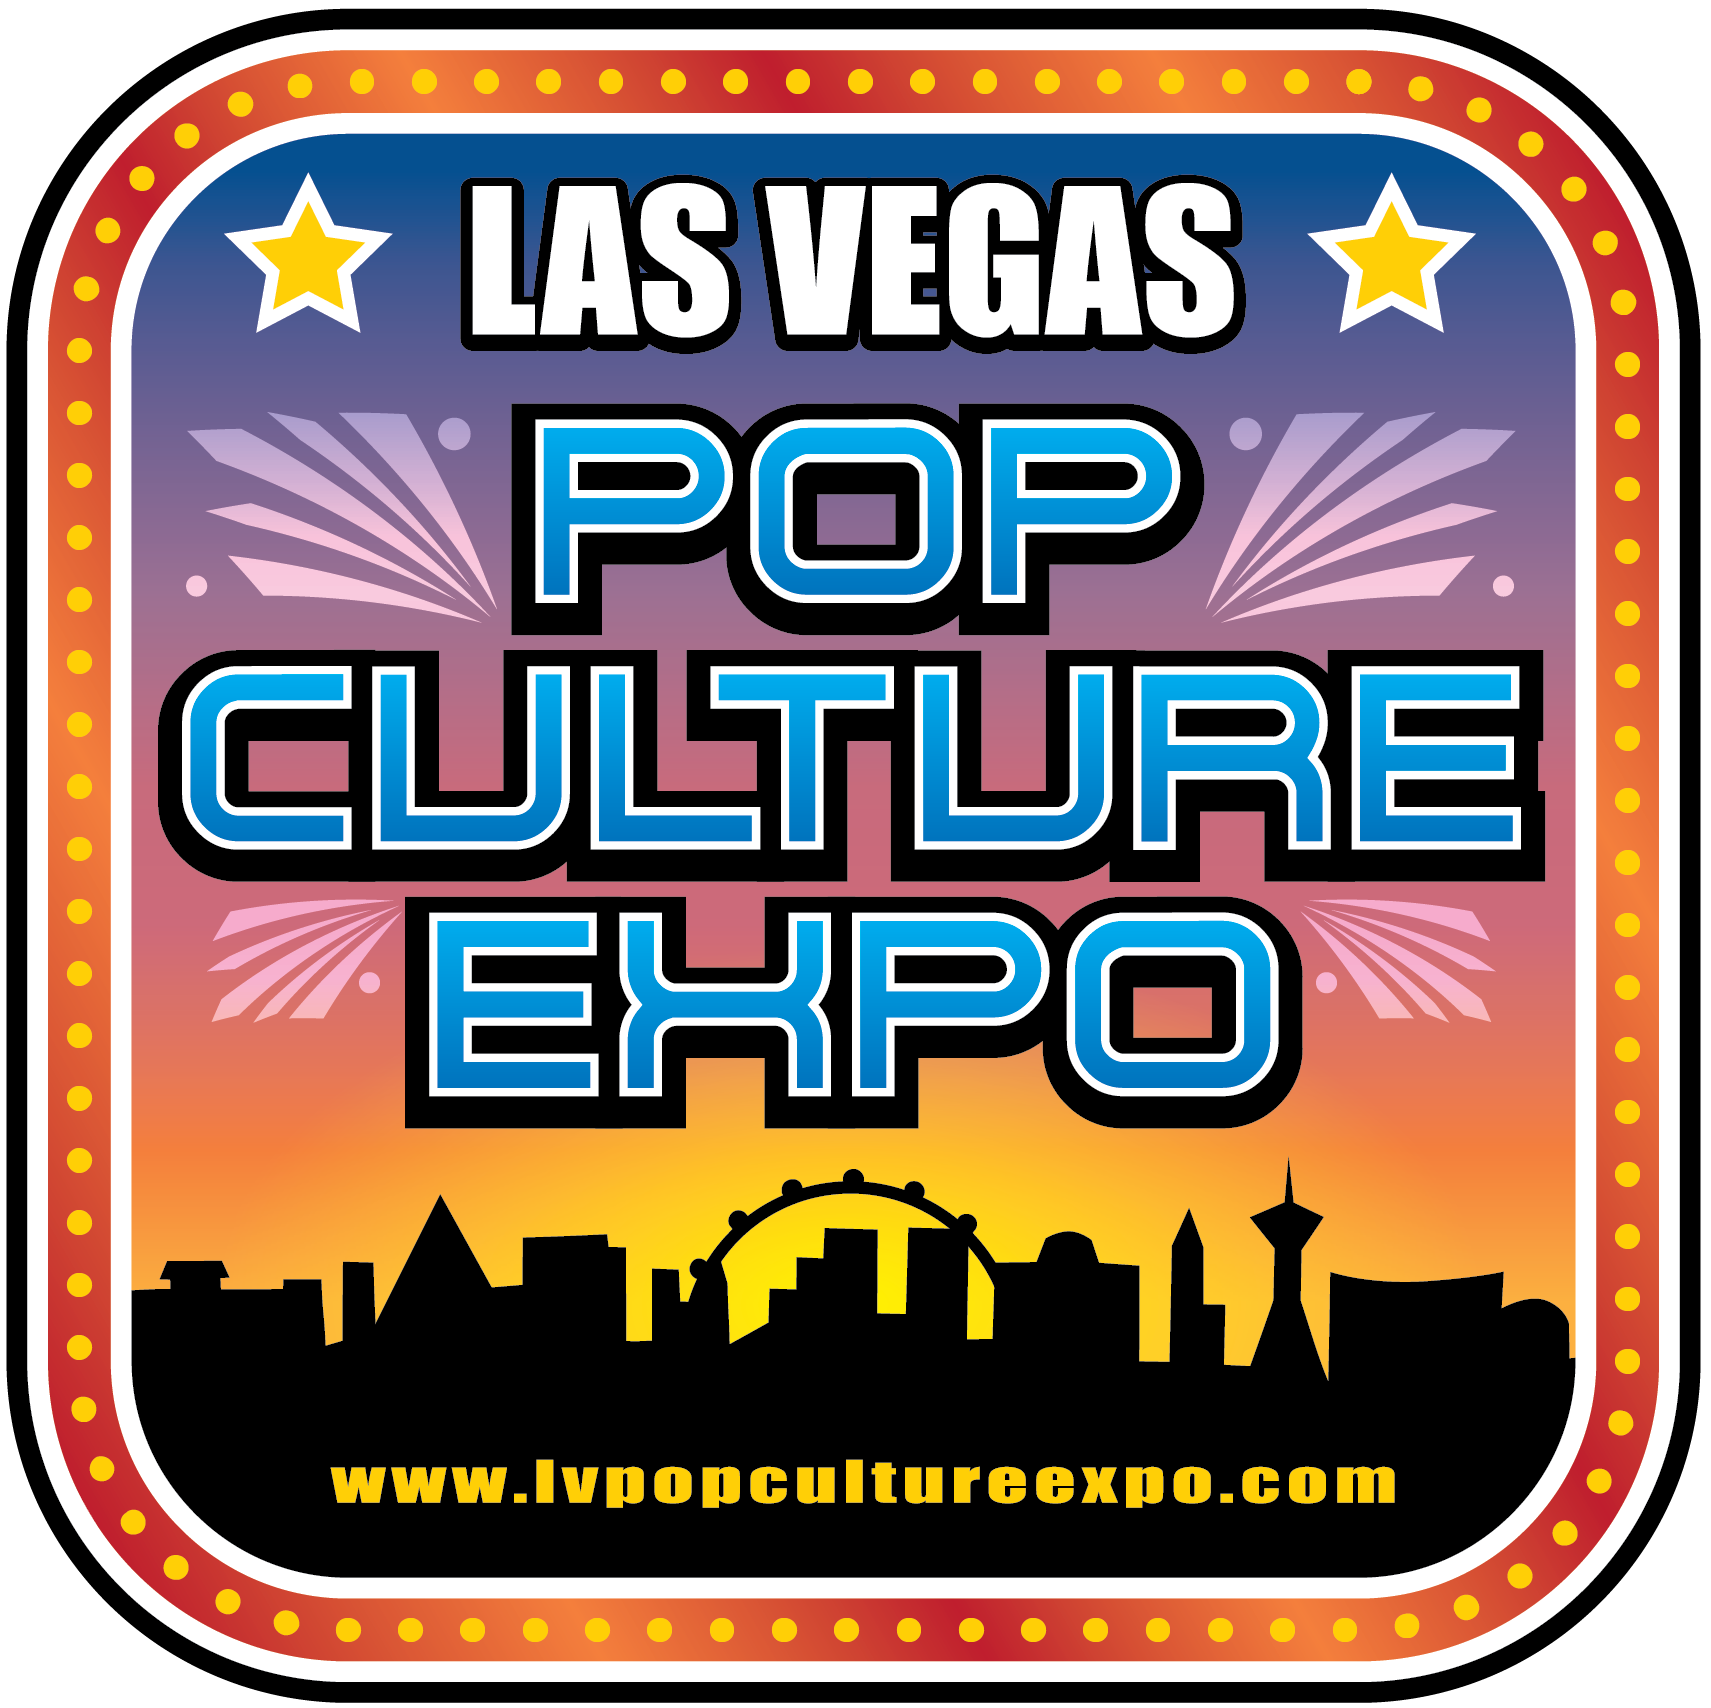 Las Vegas Pop Culture Expo